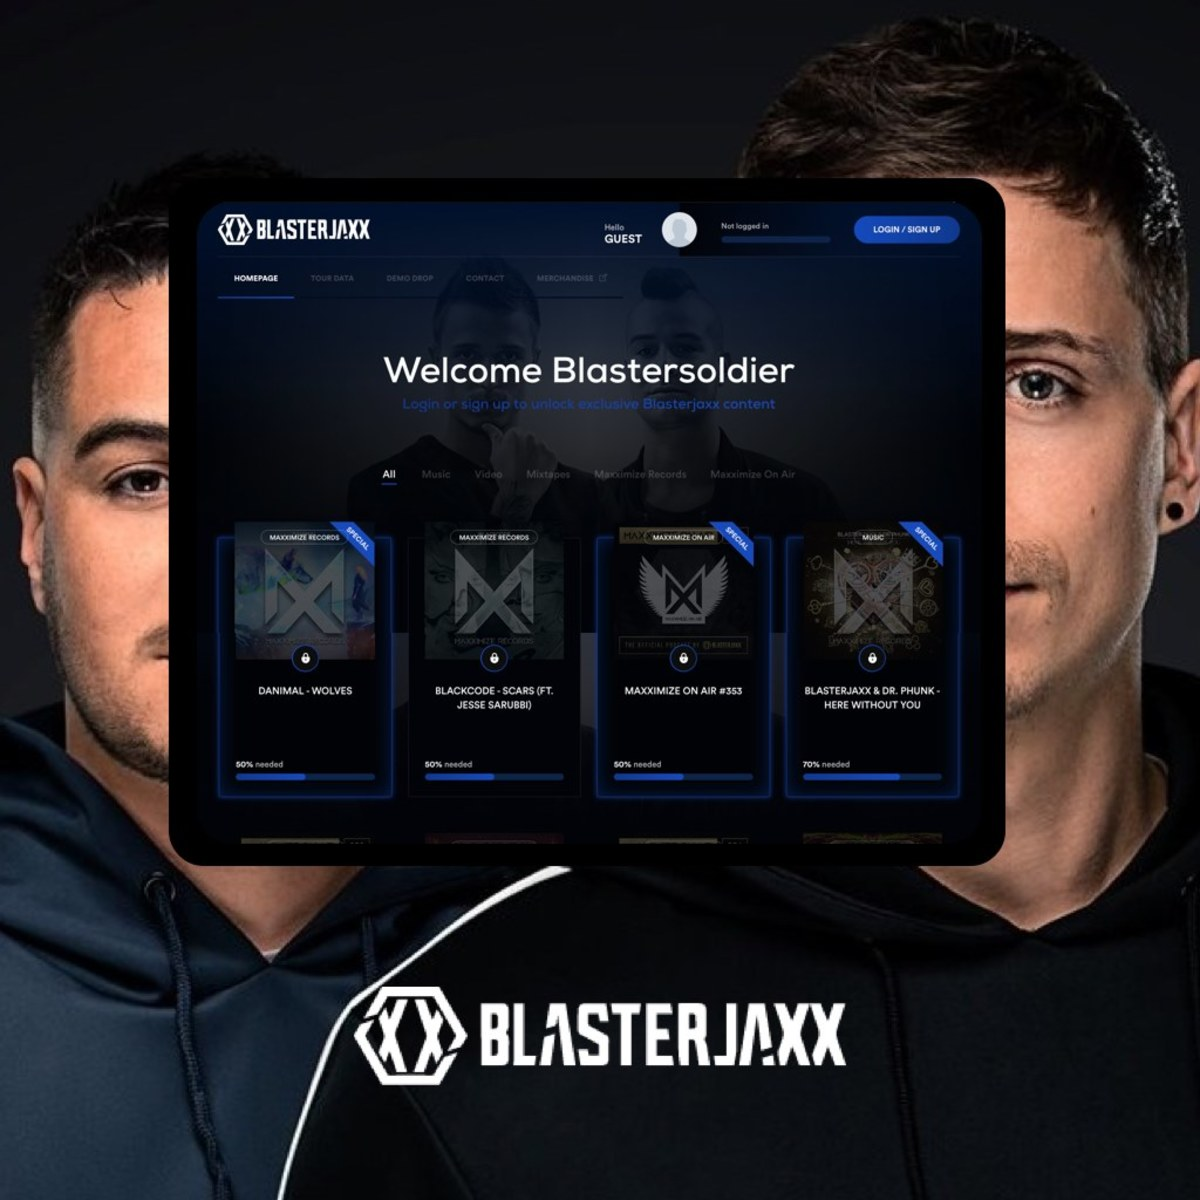 """Dutch DJduo Blasterjaxx used Fangage to host and provide early access to their music and exclusive content for their """"Blastersoldier"""" fan community."""